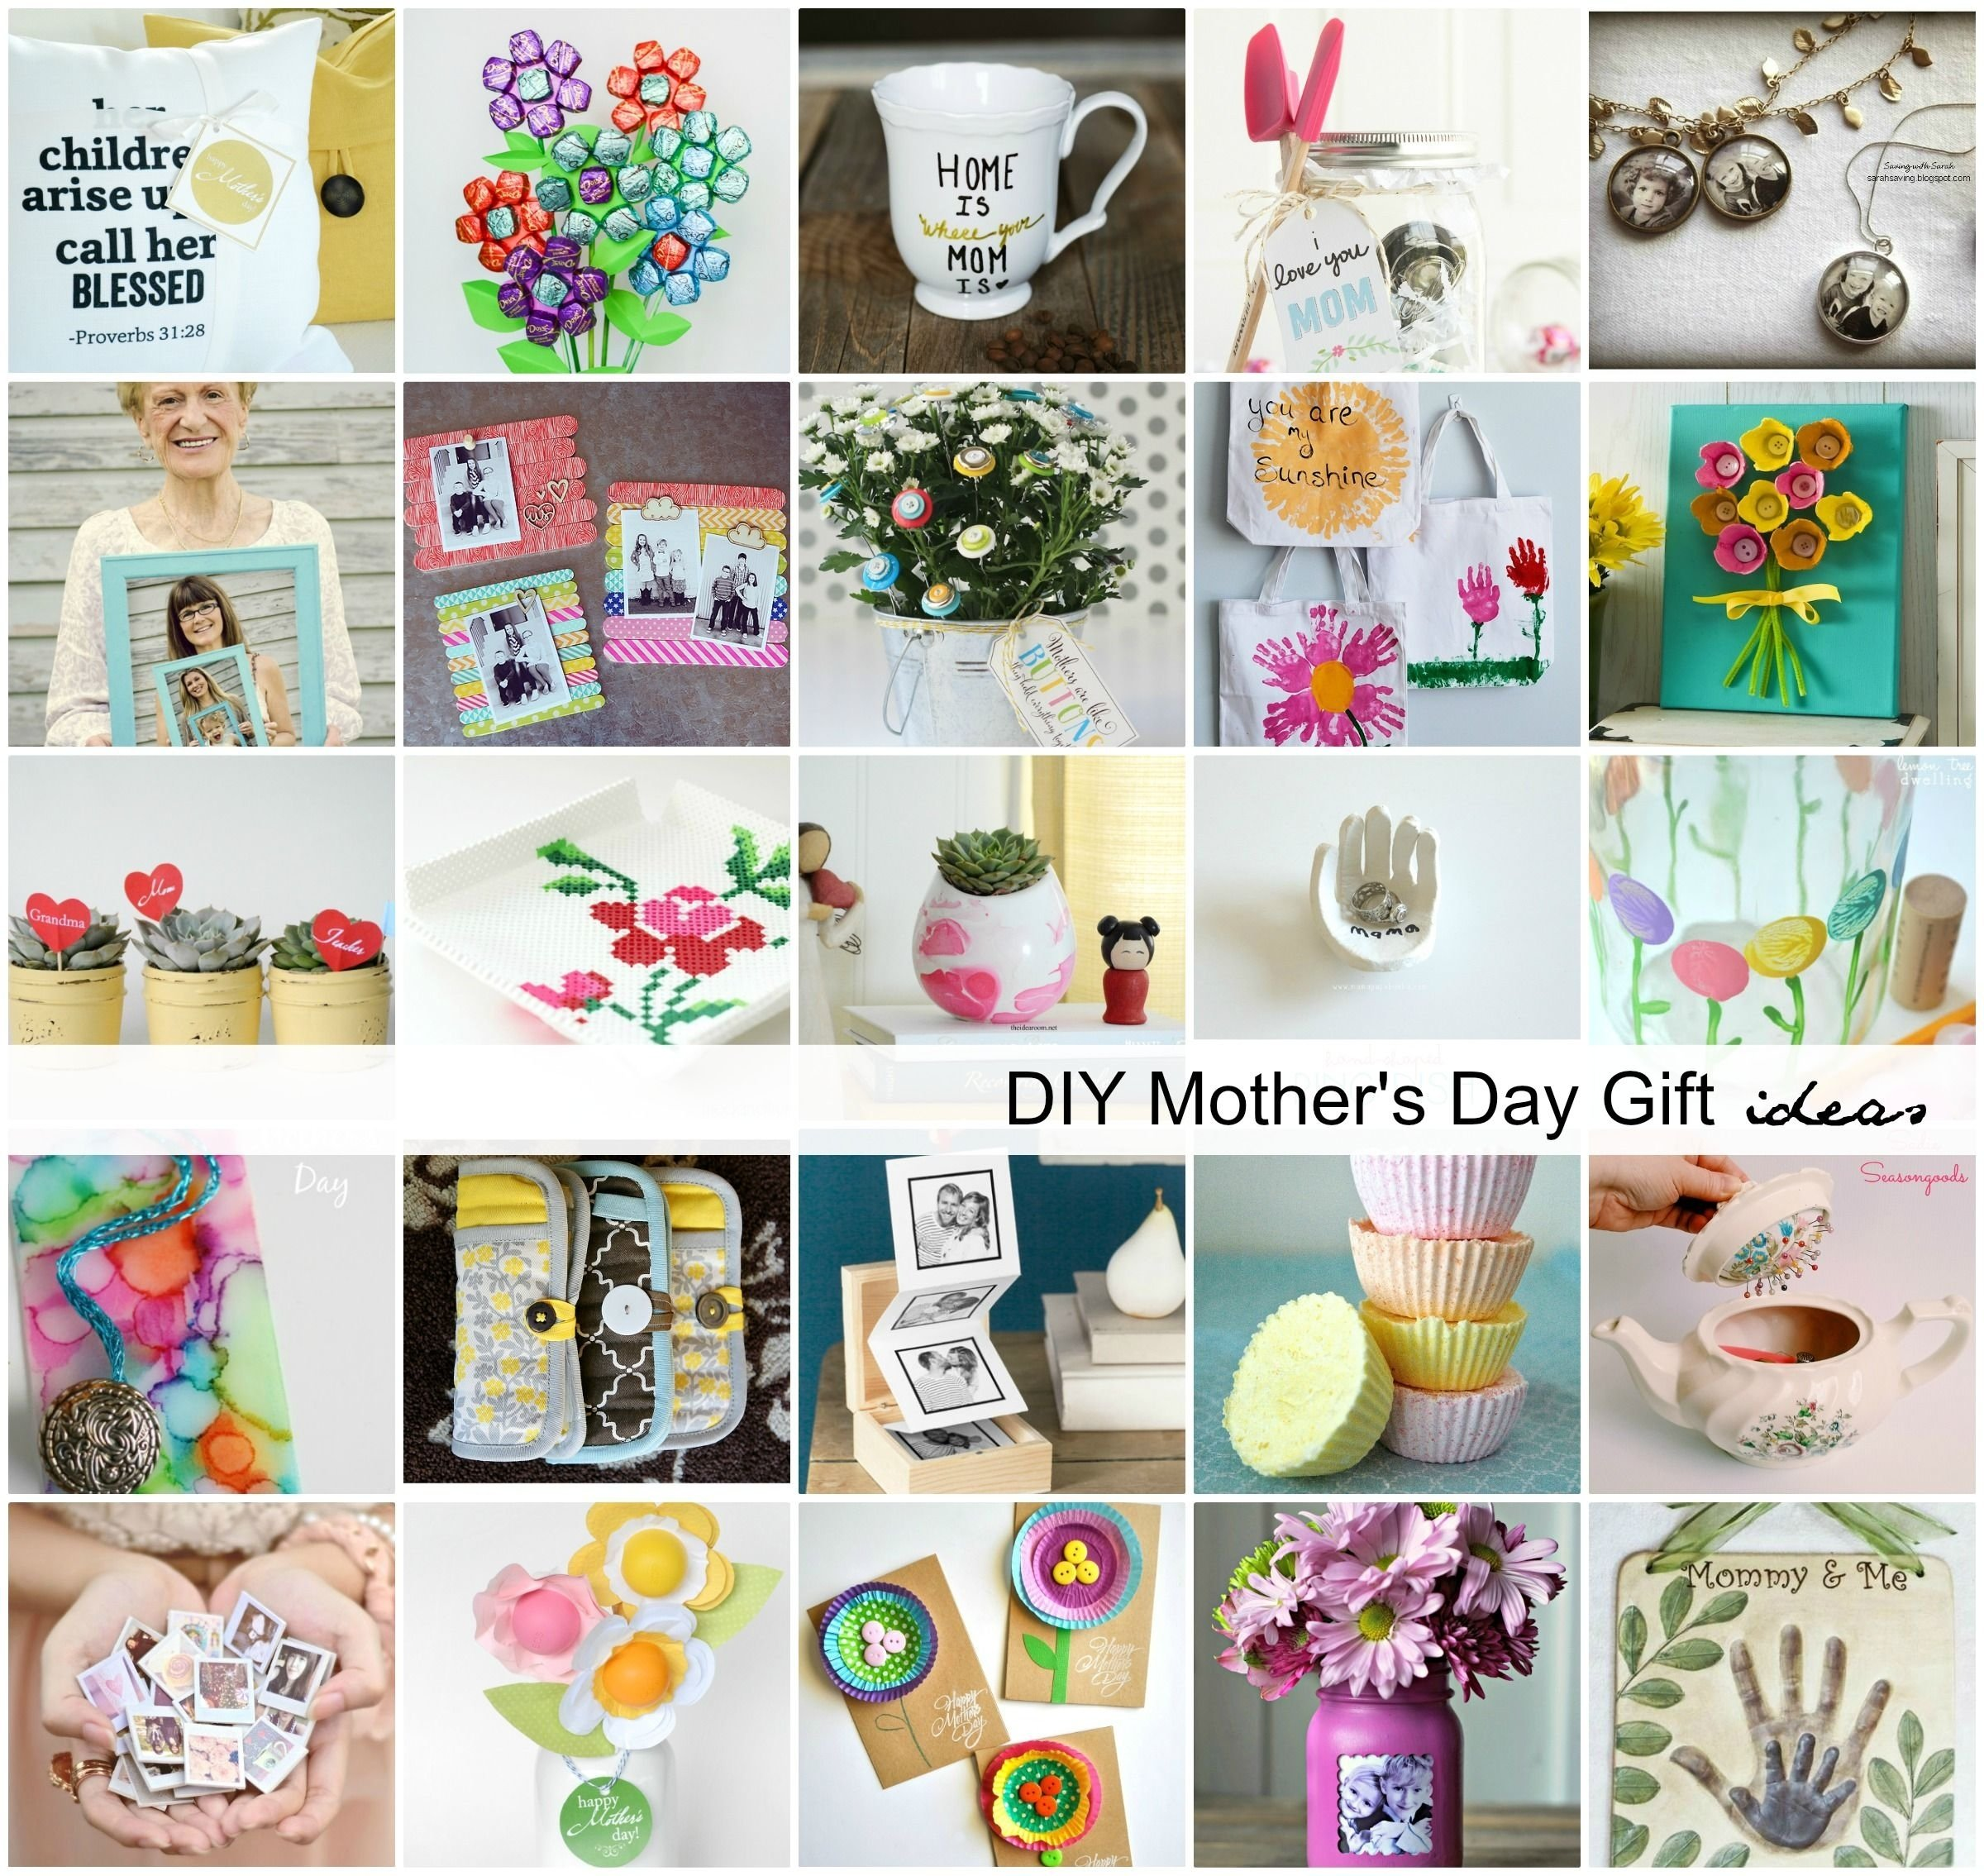 10 Cute Good Mothers Day Gifts Ideas handmade mothers day gift ideas gift craft and diy craft projects 4 2020